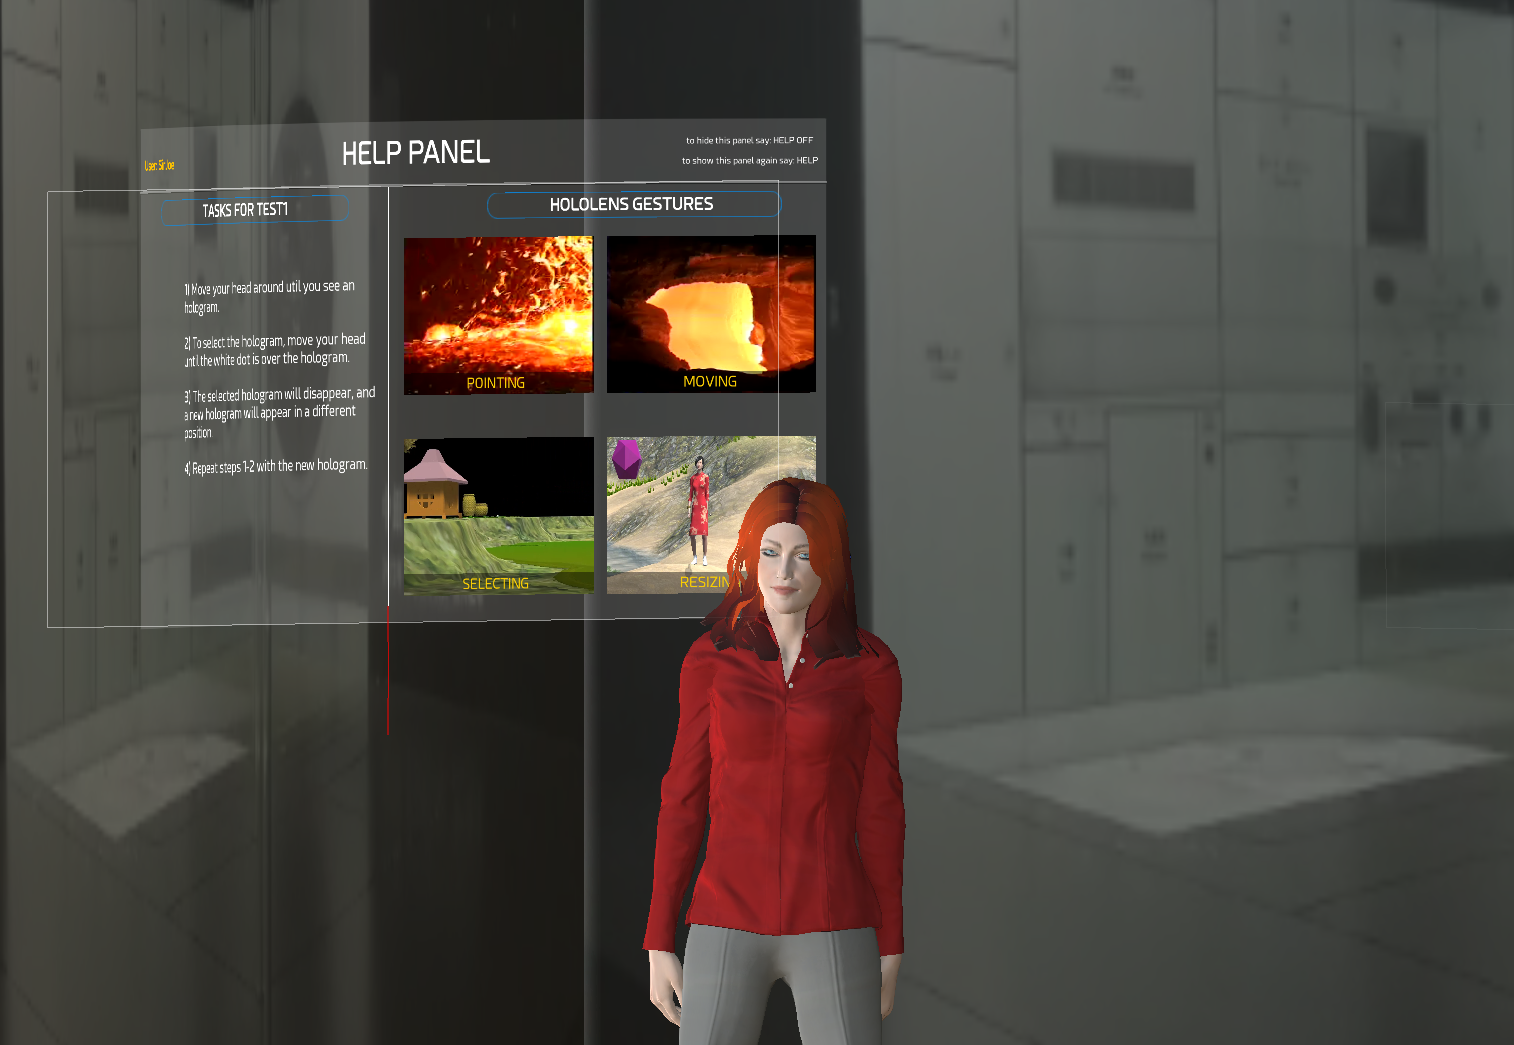 Figure 2. The virtual assistant explaining the use of the help panel